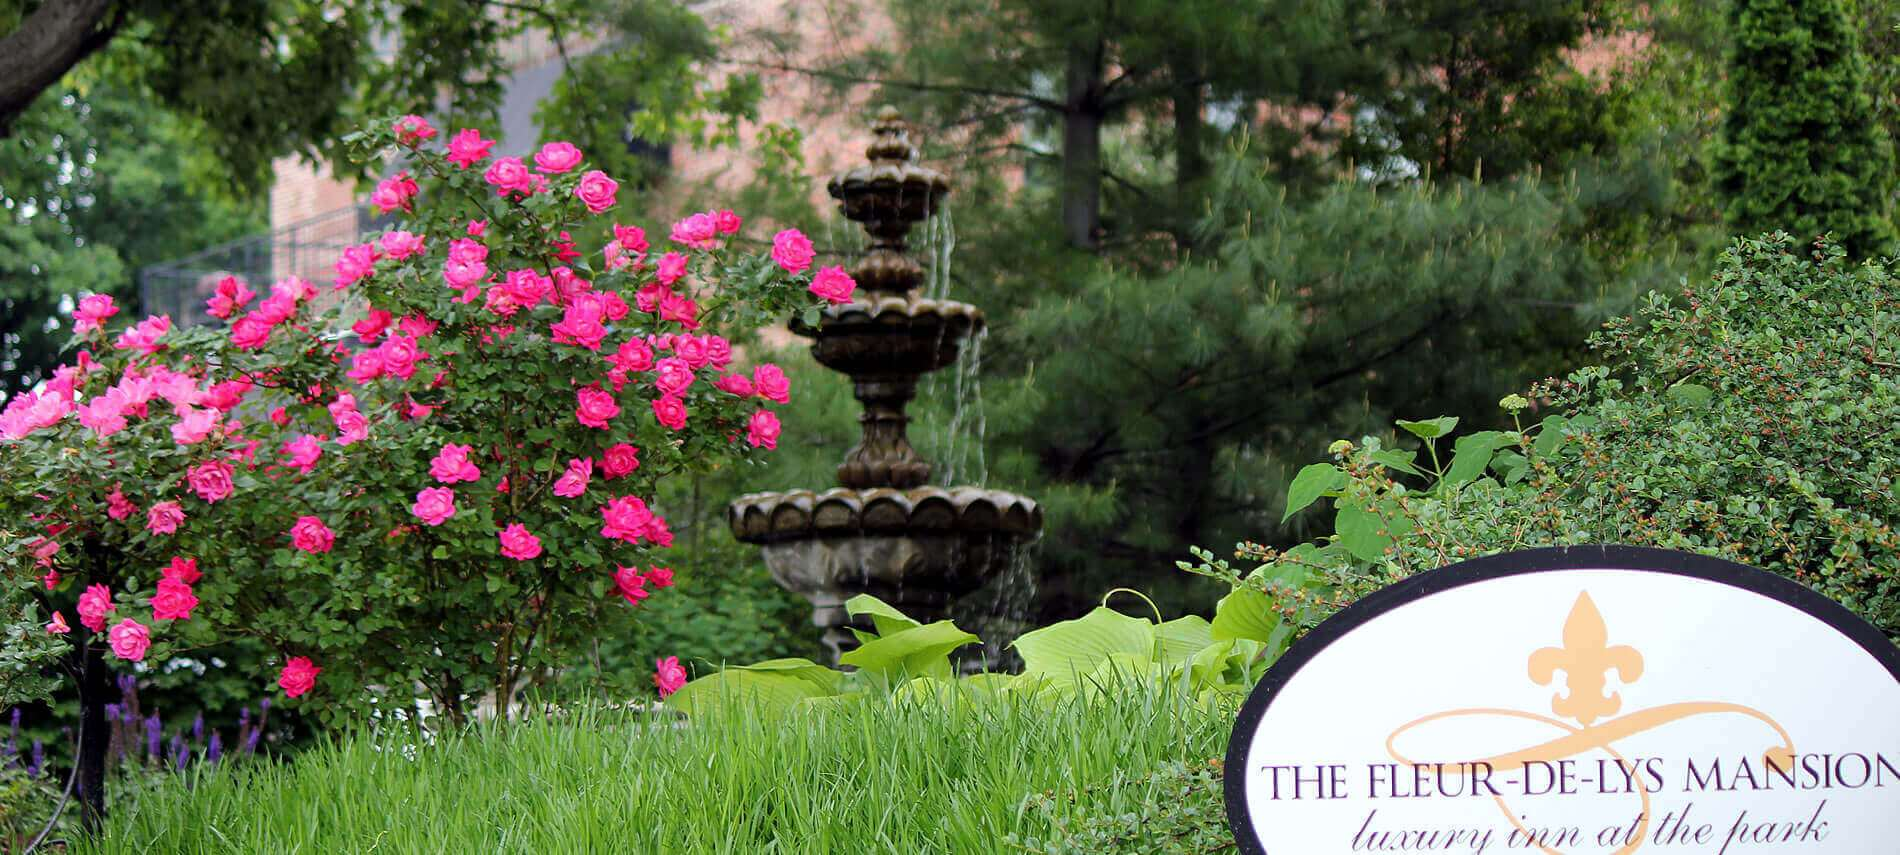 3 tier fountain with pink flowers